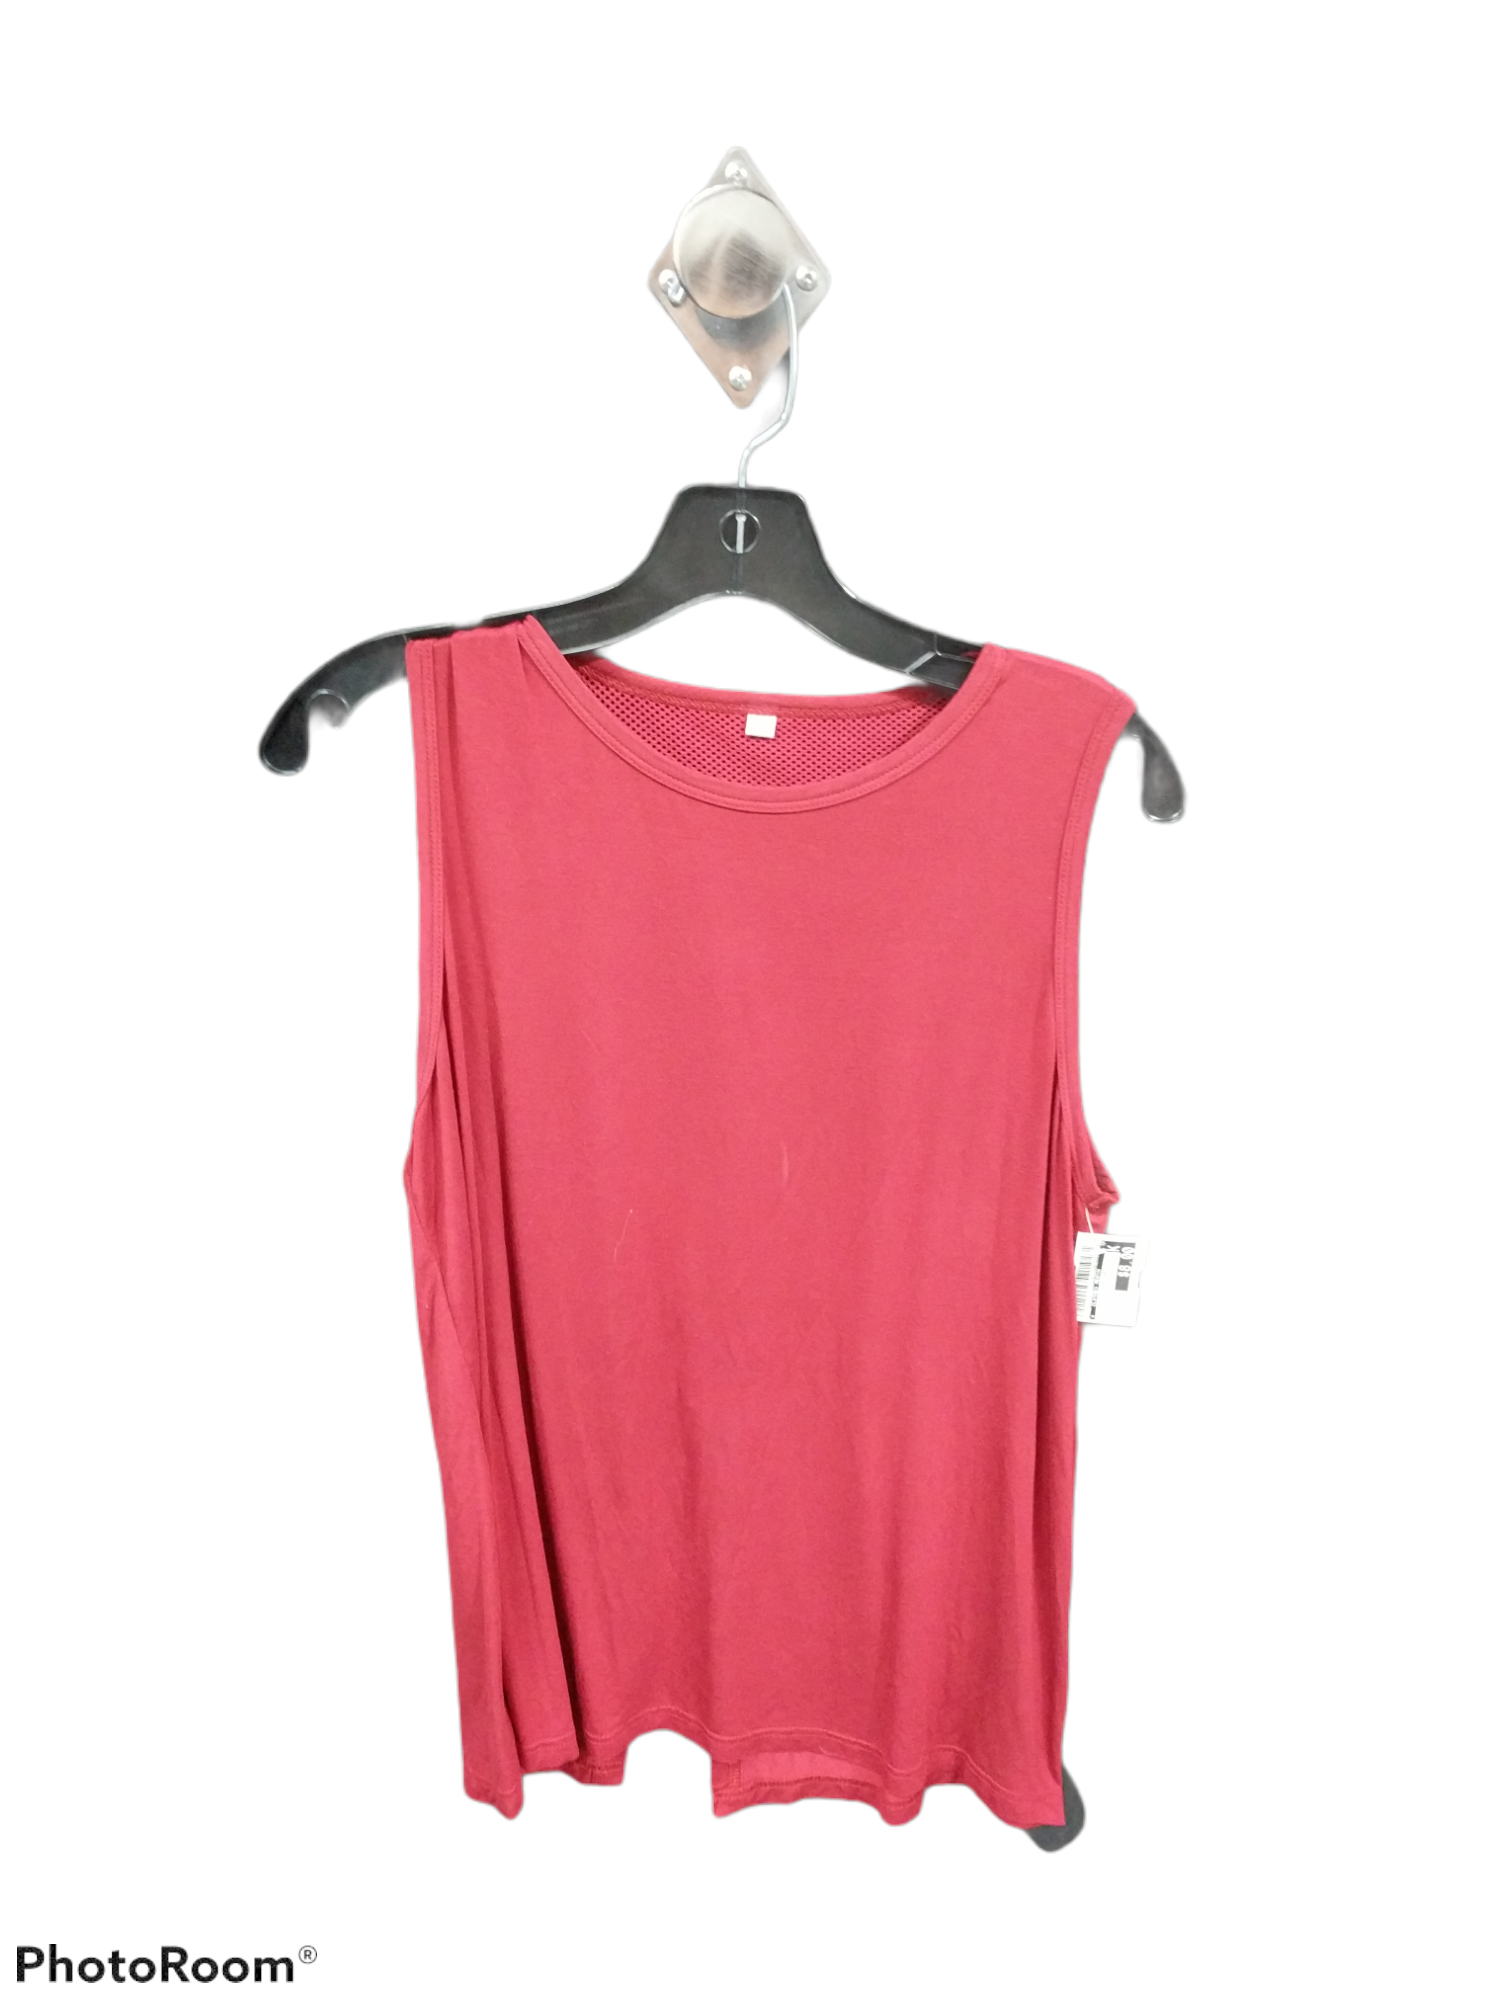 Primary Photo - brand:    clothes mentor , style: athletic tank top , color: red , size: l , sku: 267-26790-10252